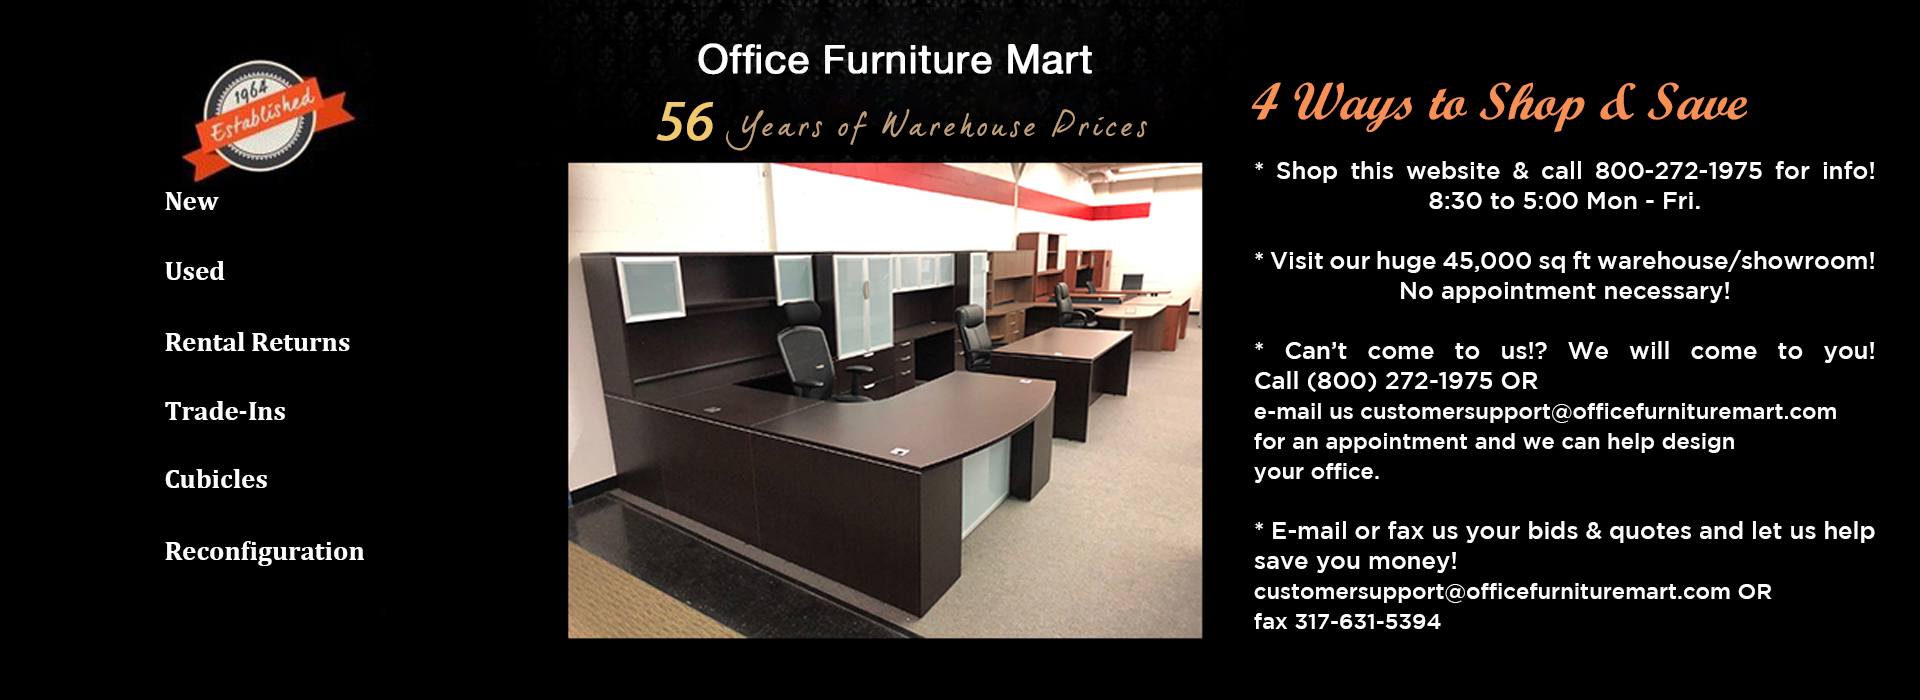 New Used Office Furniture Office Chairs Conference Tables Desks Indianapolis Indiana